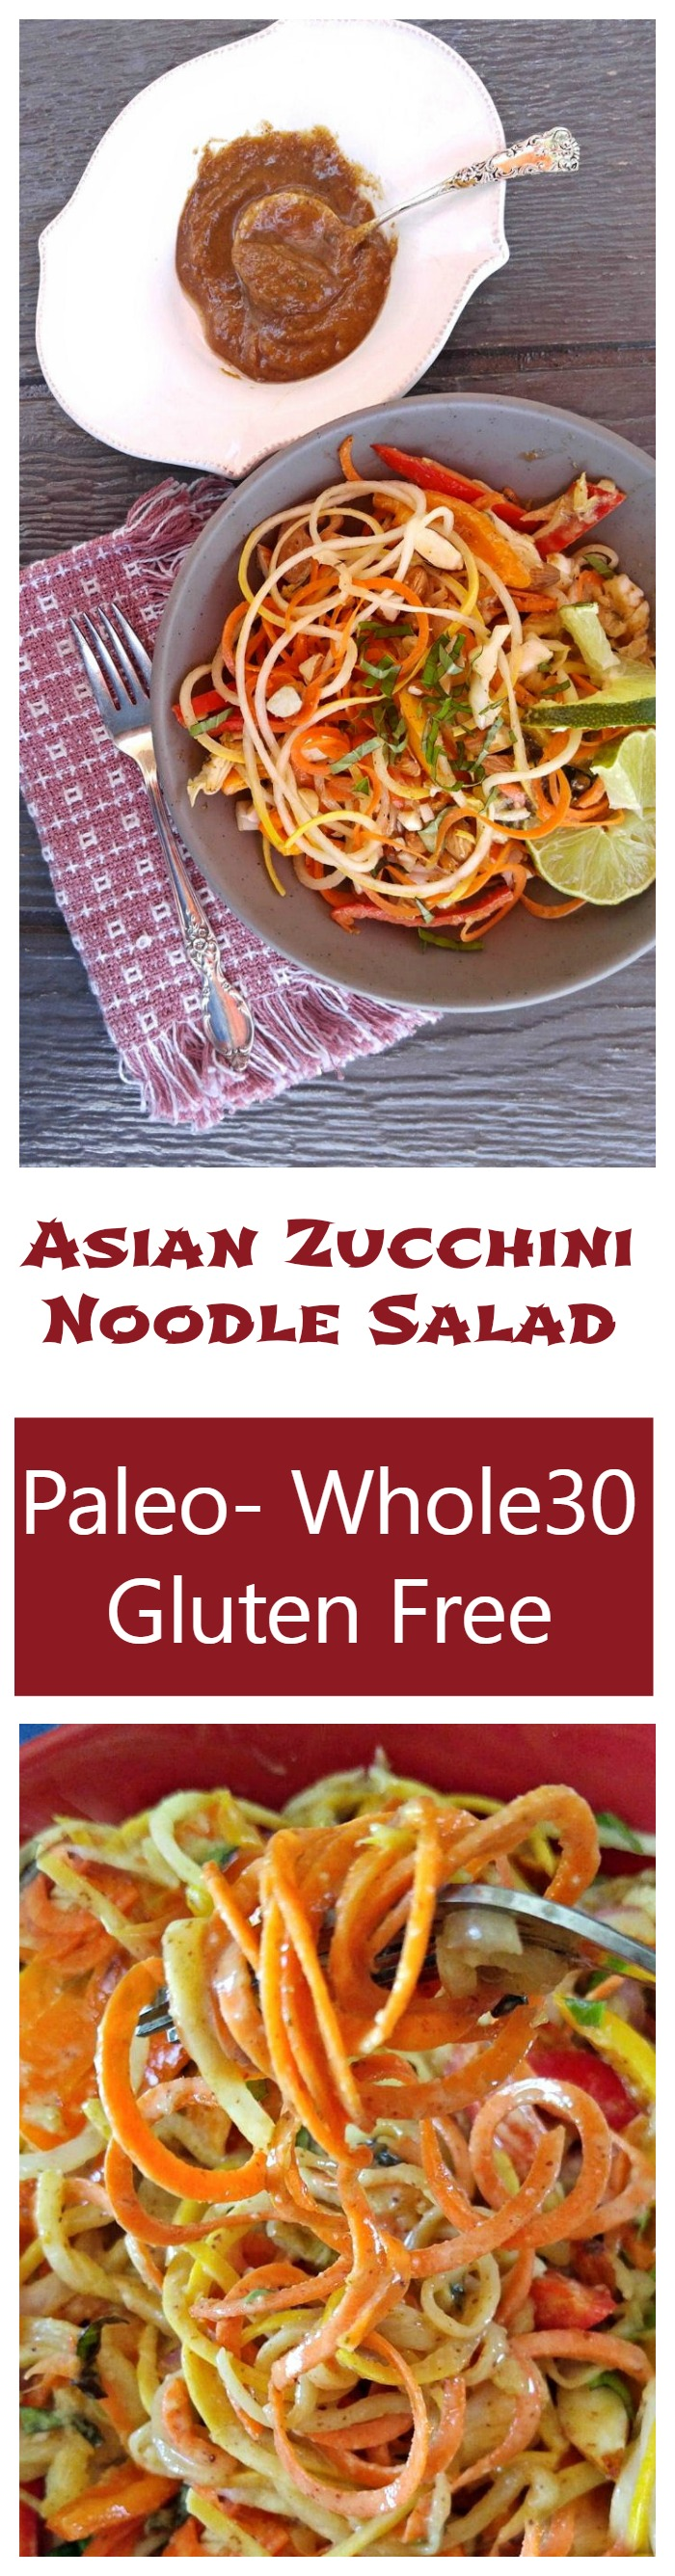 This Asian zucchini noodle salad has the most amazing dressing. It' is filling and tasty and super easy to prepare.